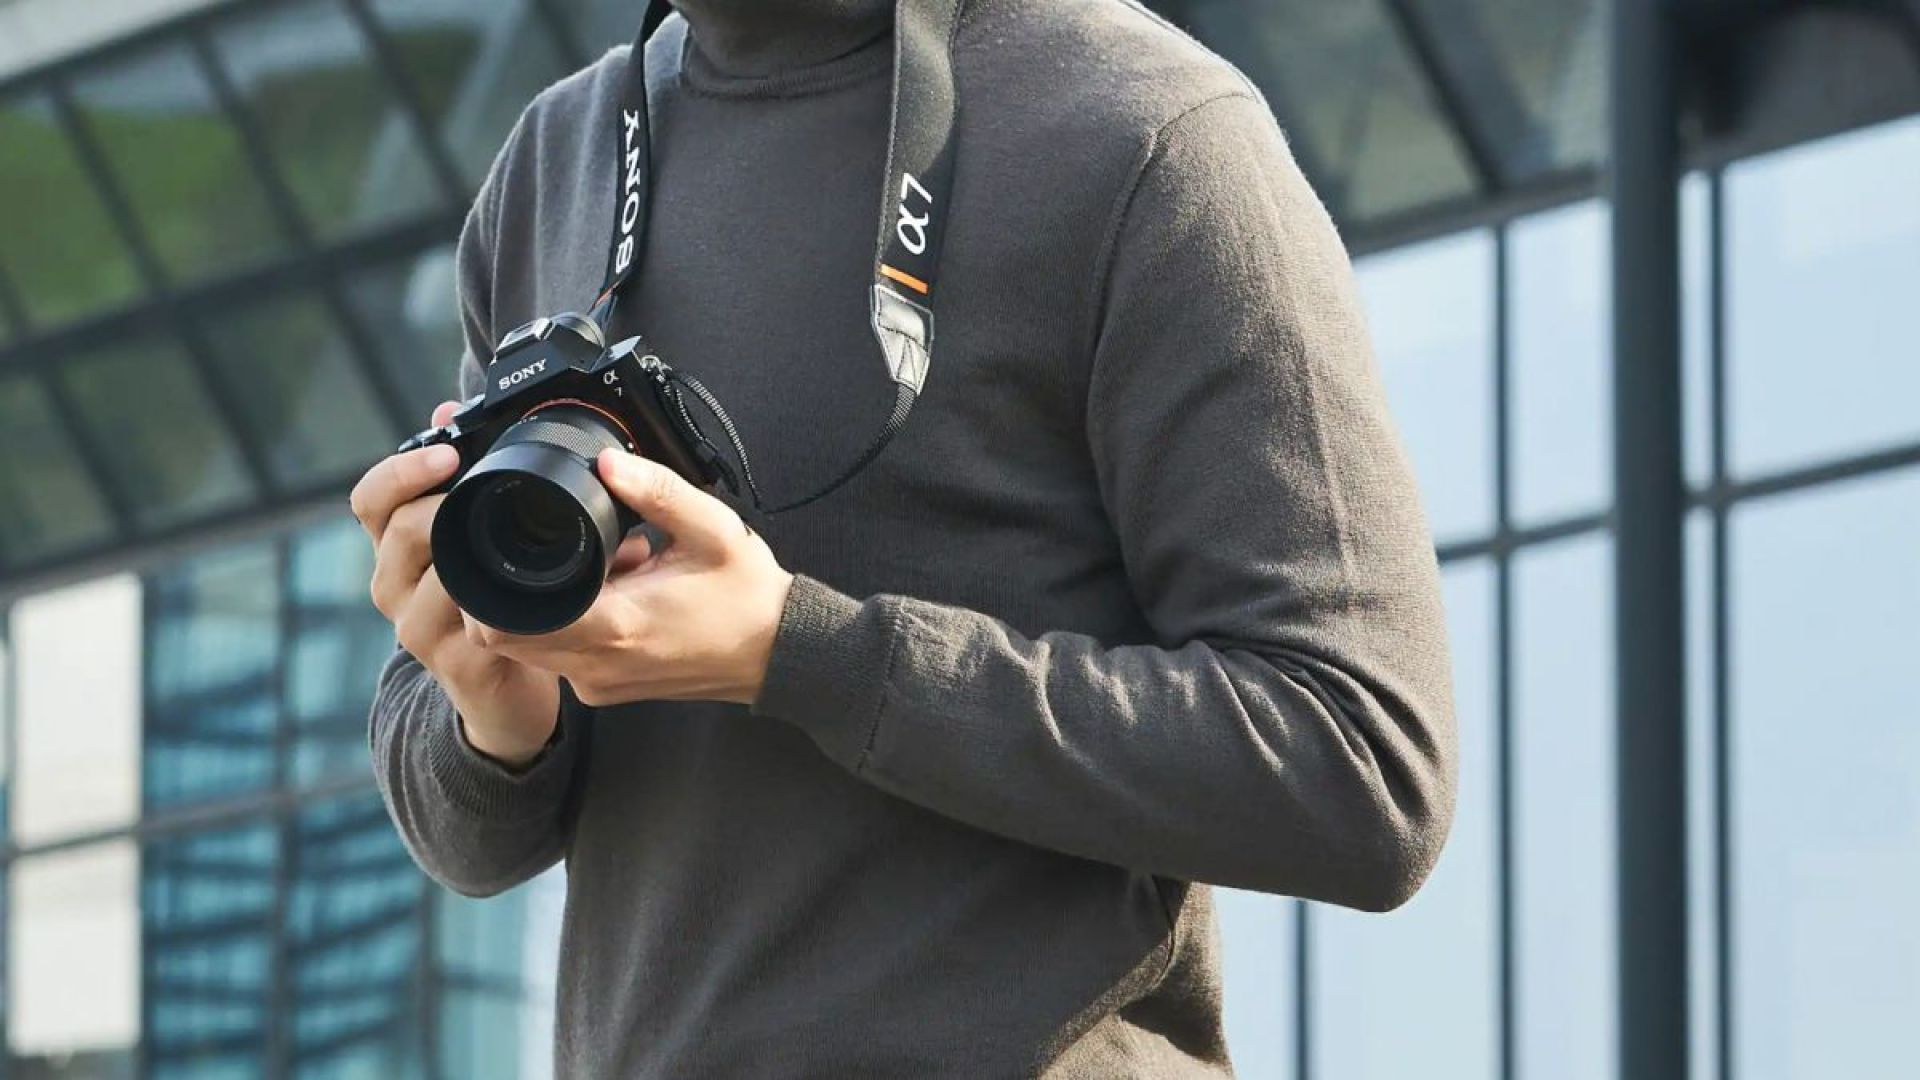 Incredible Christmas deal: Get the Sony A7 full-frame mirrorless camera for £509